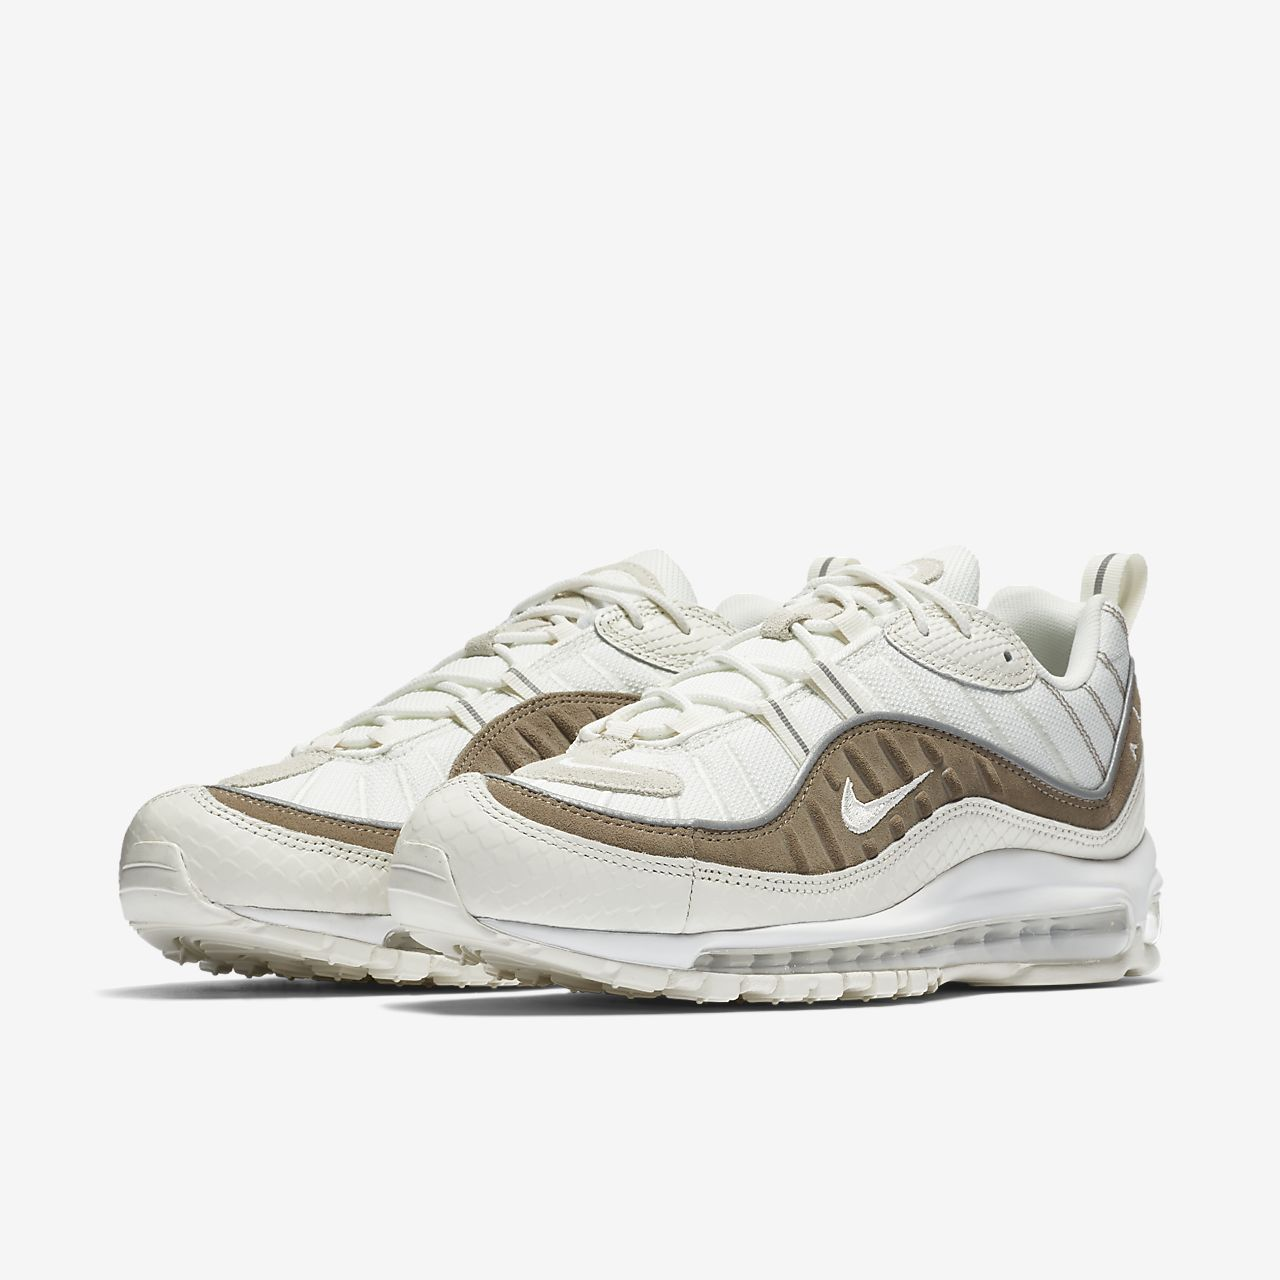 size 40 8fb6b 92378 2018 has been a strong start for Nike and their Air Max line. While the Air  Max 97 seemed to be a key model for the Swoosh last year, it seems that .